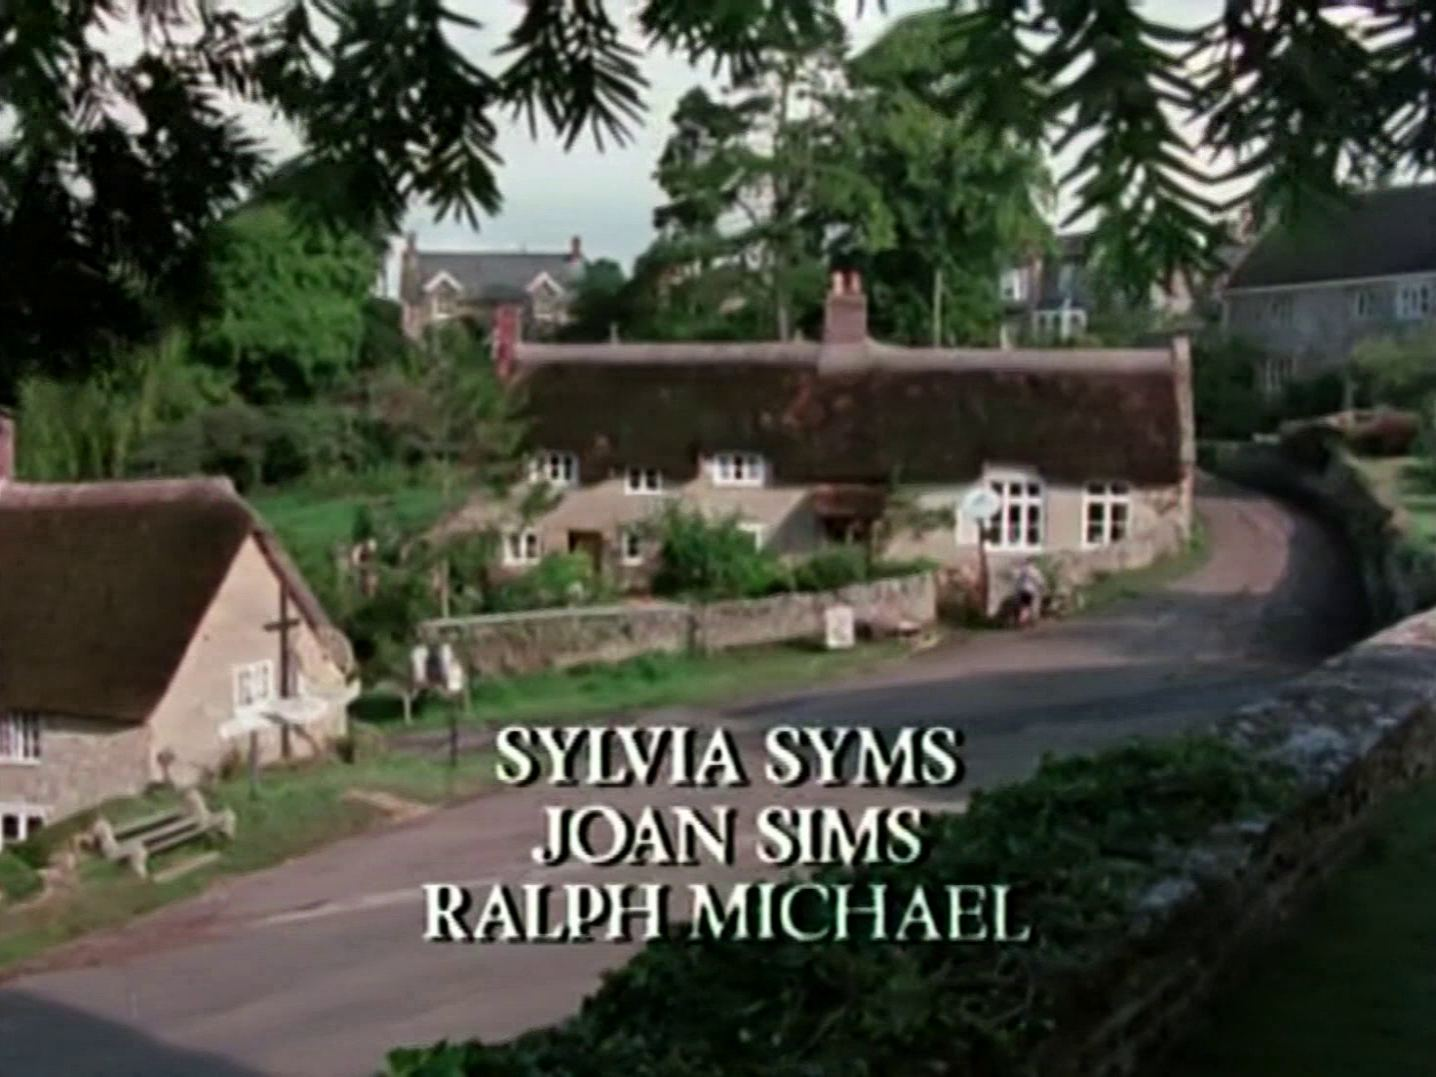 Main title from the 1985 'A Murder Is Announced' episode of Agatha Christie's Miss Marple (1984-1992) (7). Sylvia Syms, Joan Sims, Ralph Michael